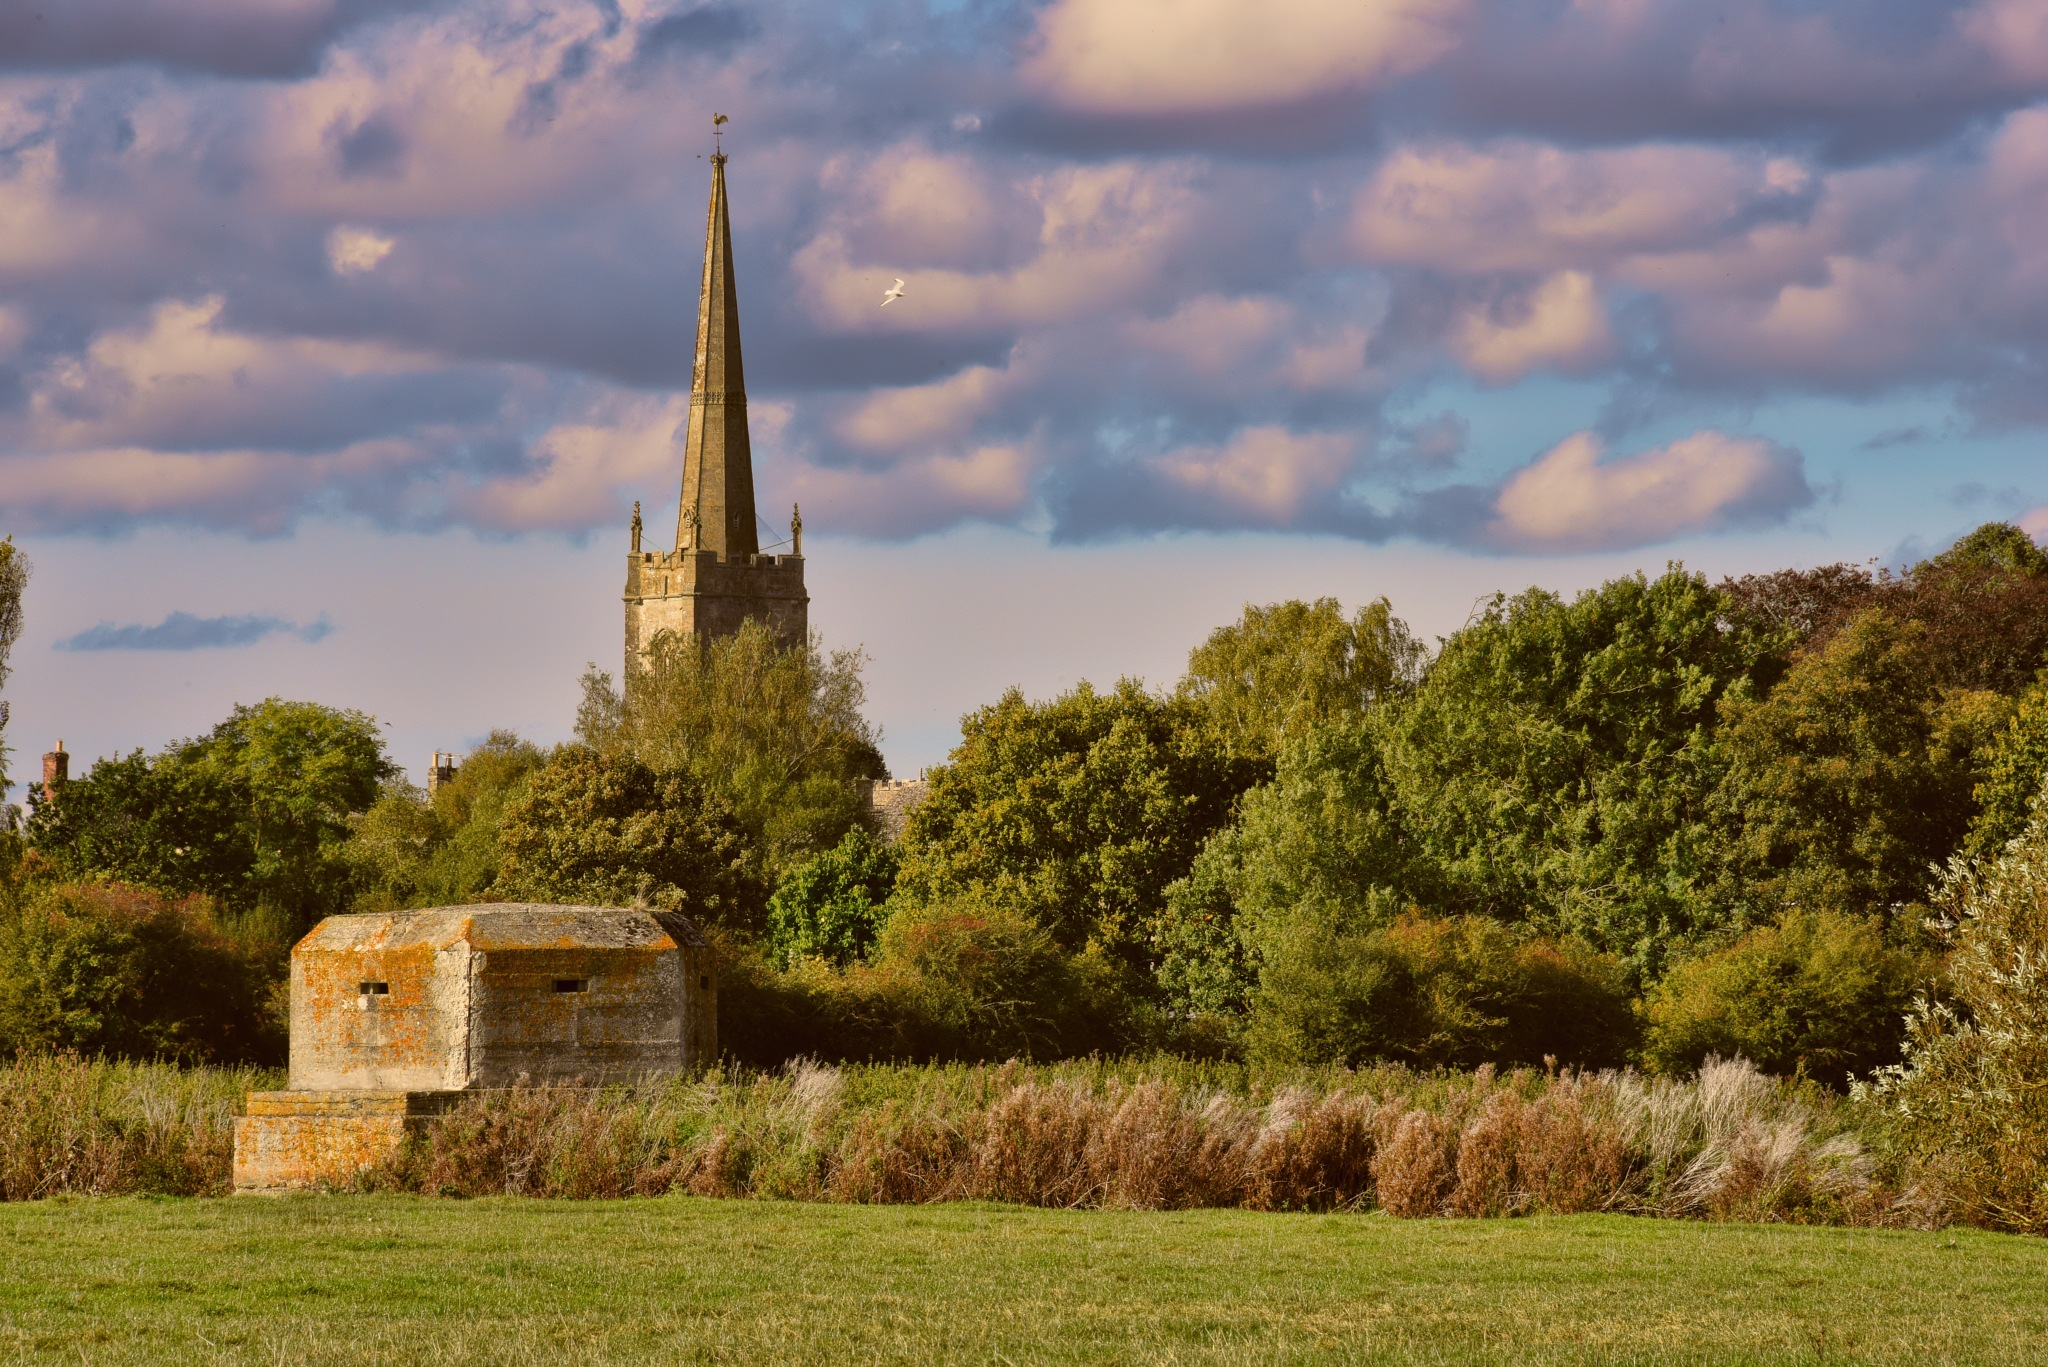 The Church and the WWII Pillbox by Garry Evans